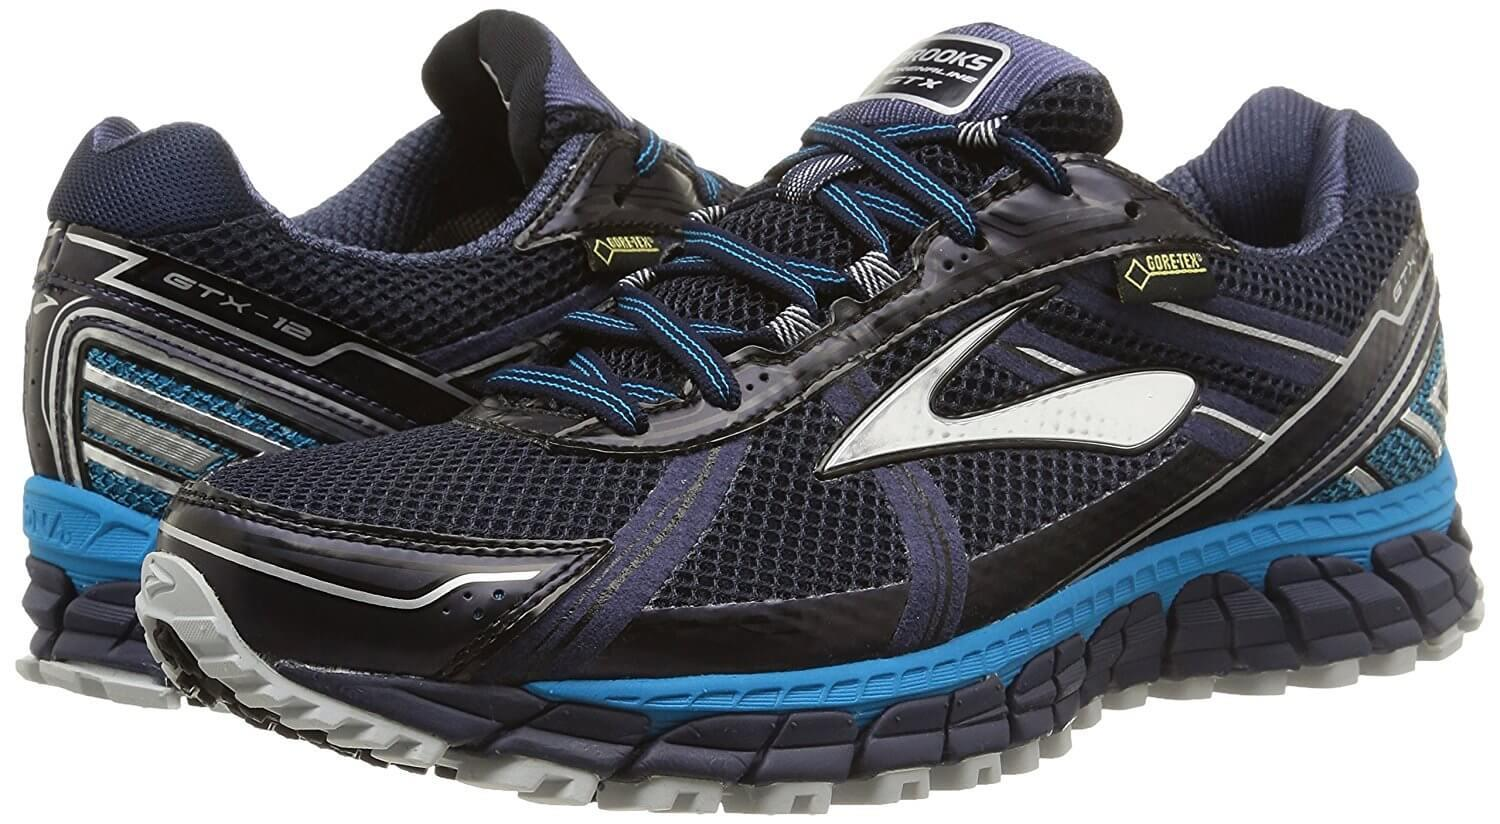 Pair of the Brooks Adrenaline ASR 12 GTX Running Shoes